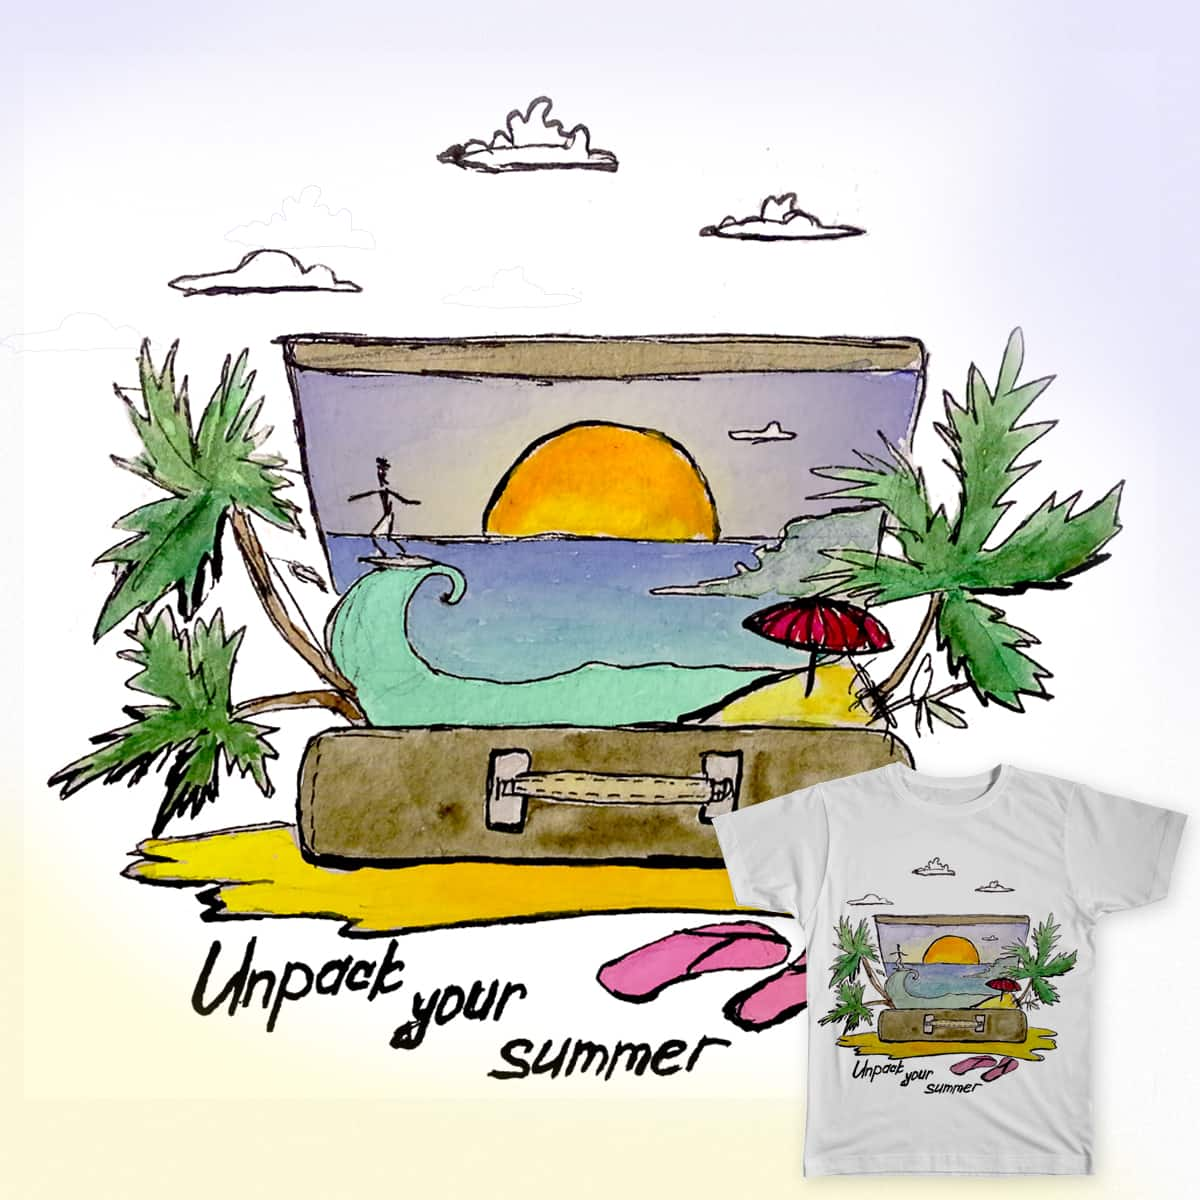 Unpack your summer by VenturousMind on Threadless